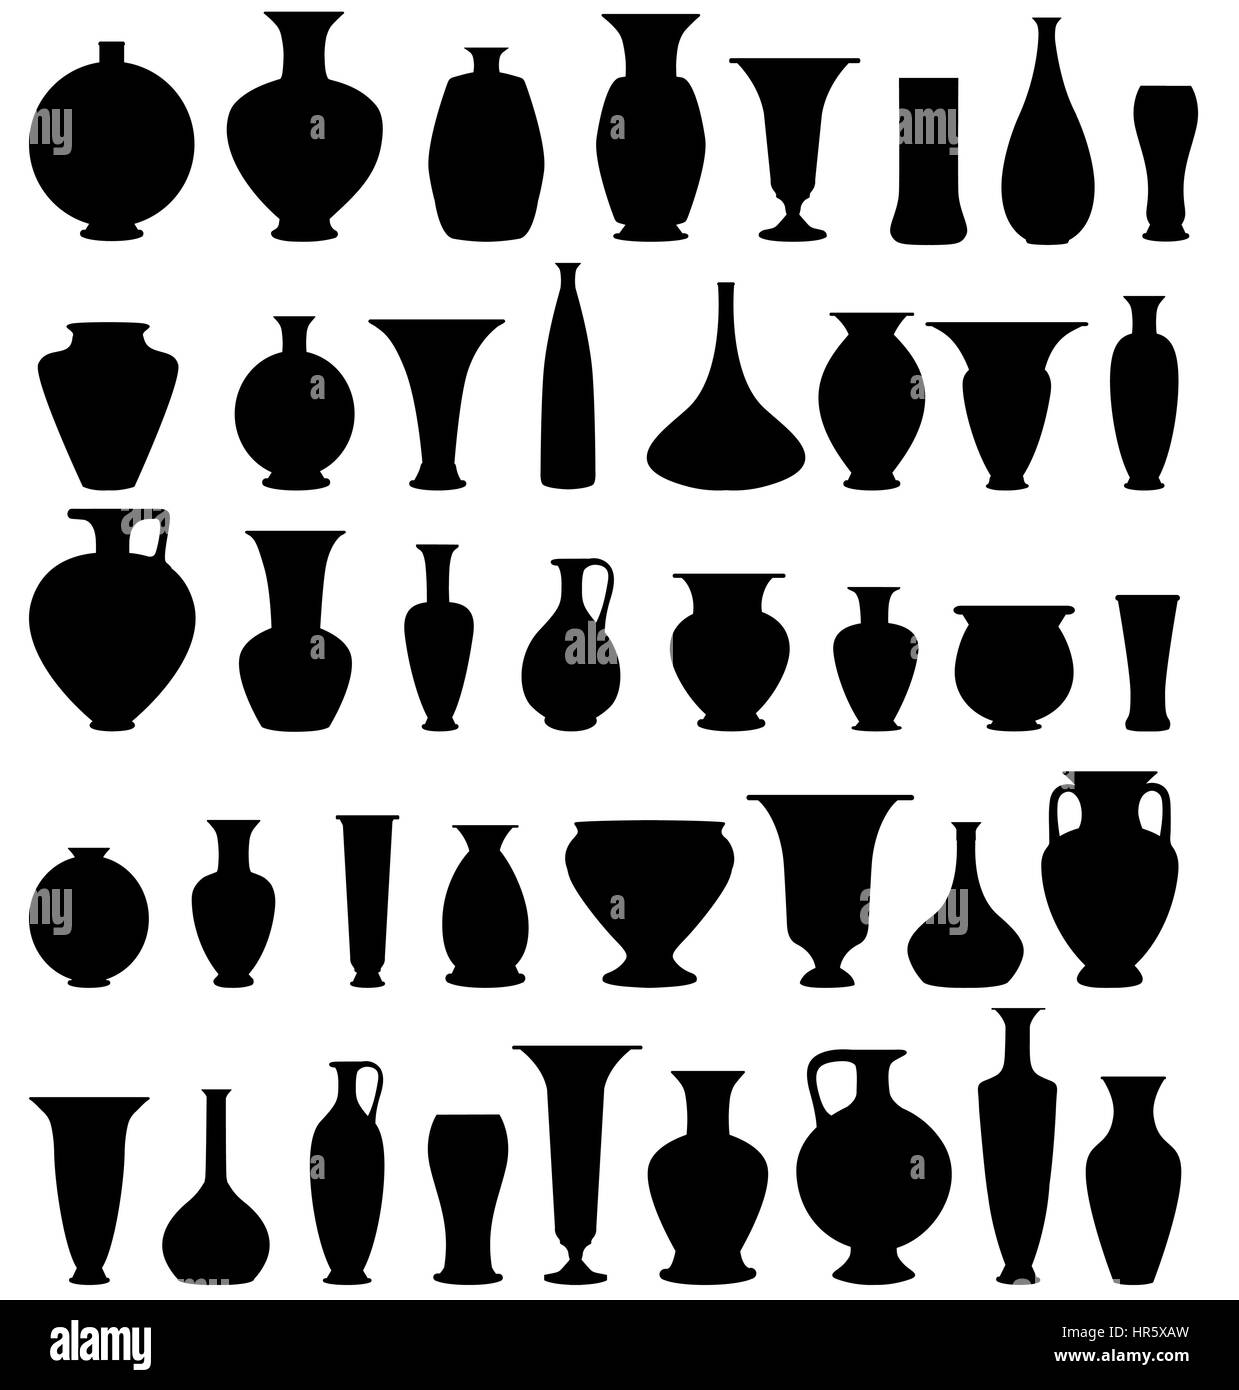 Pot Pottery Vases Flower Home Interior Decoration. Vector Icon Collection.